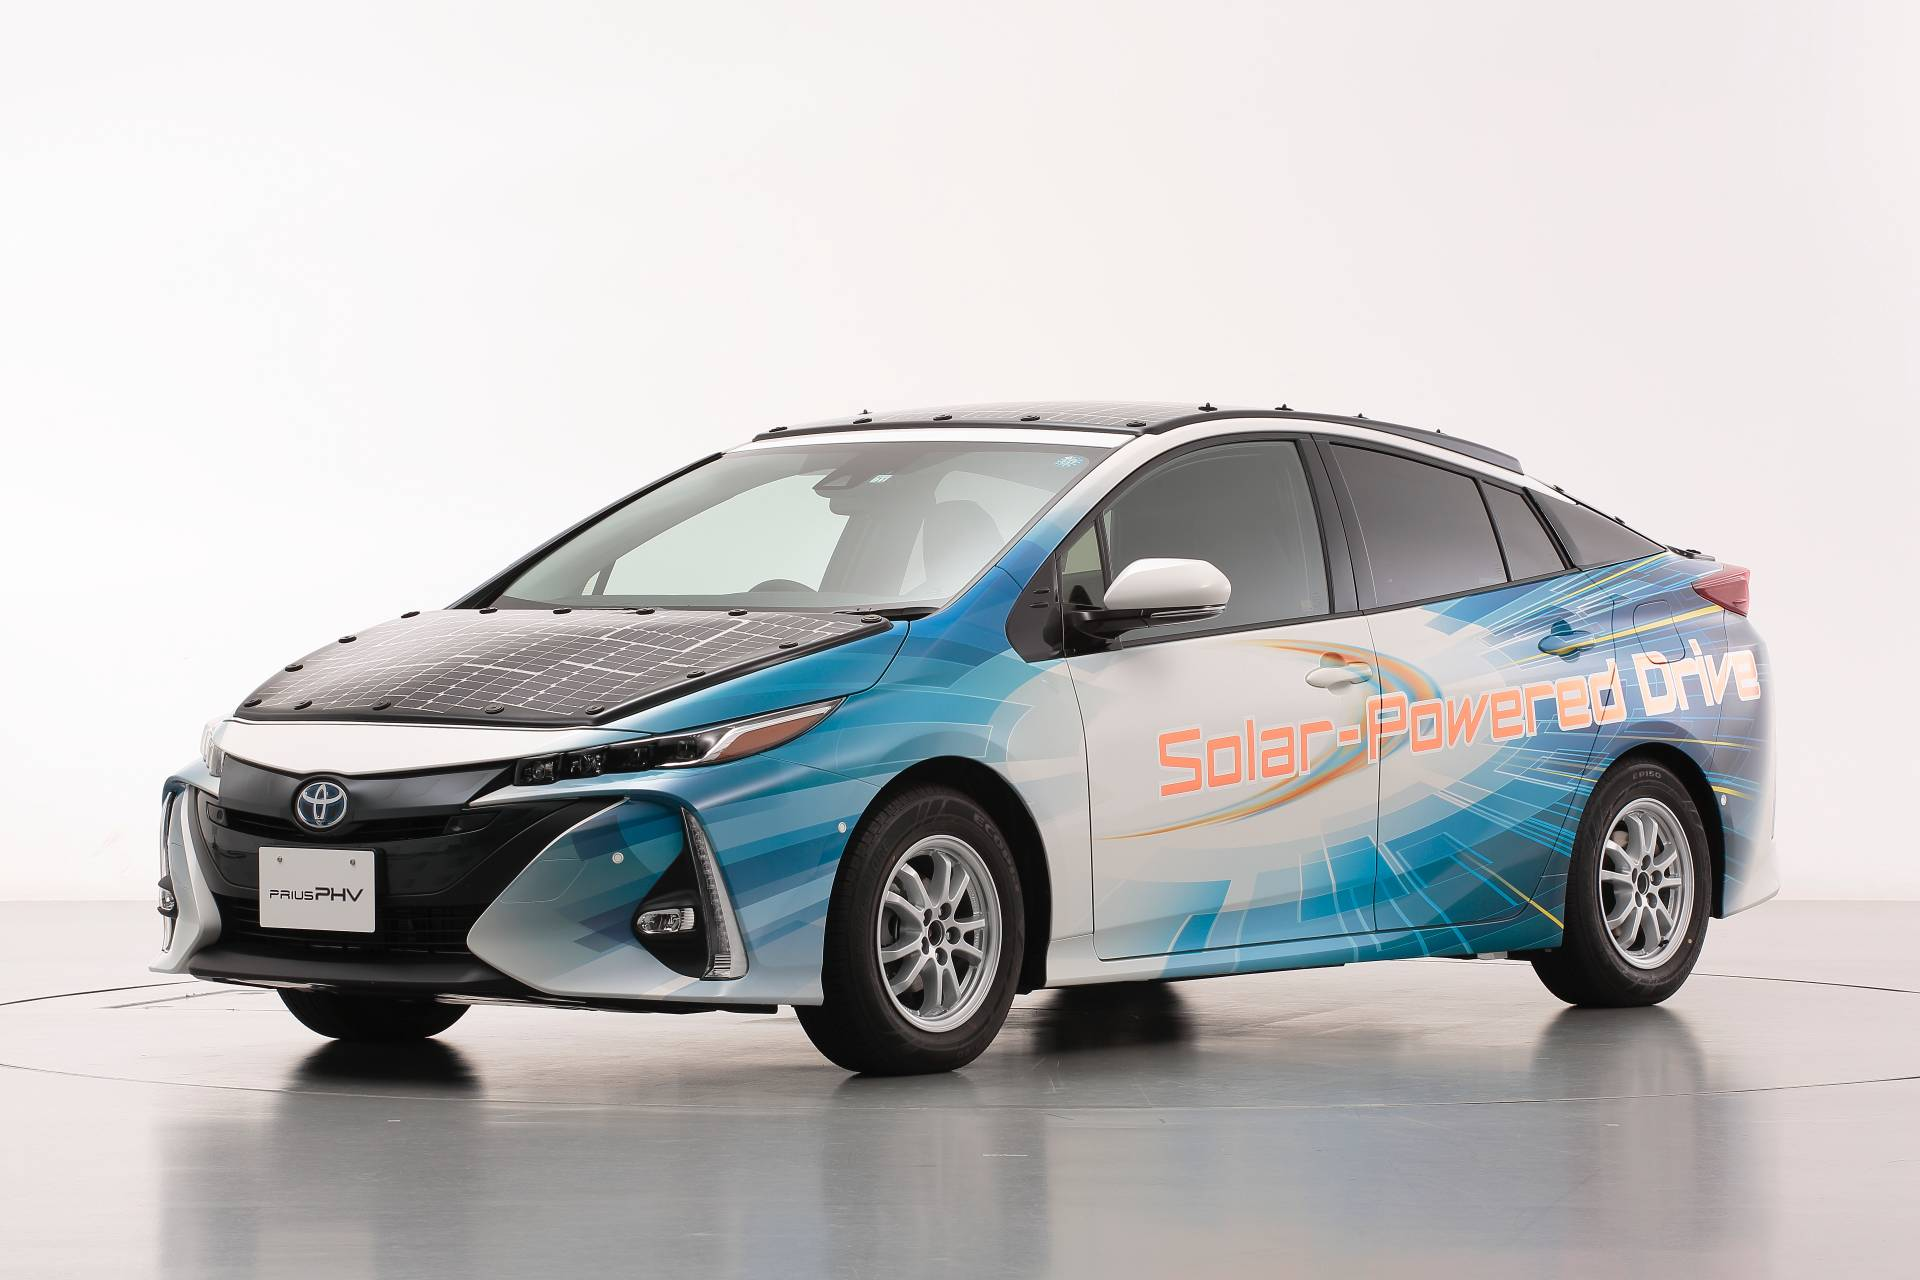 4691c315-toyota-prius-phv-demo-car-with-solar-panels-5